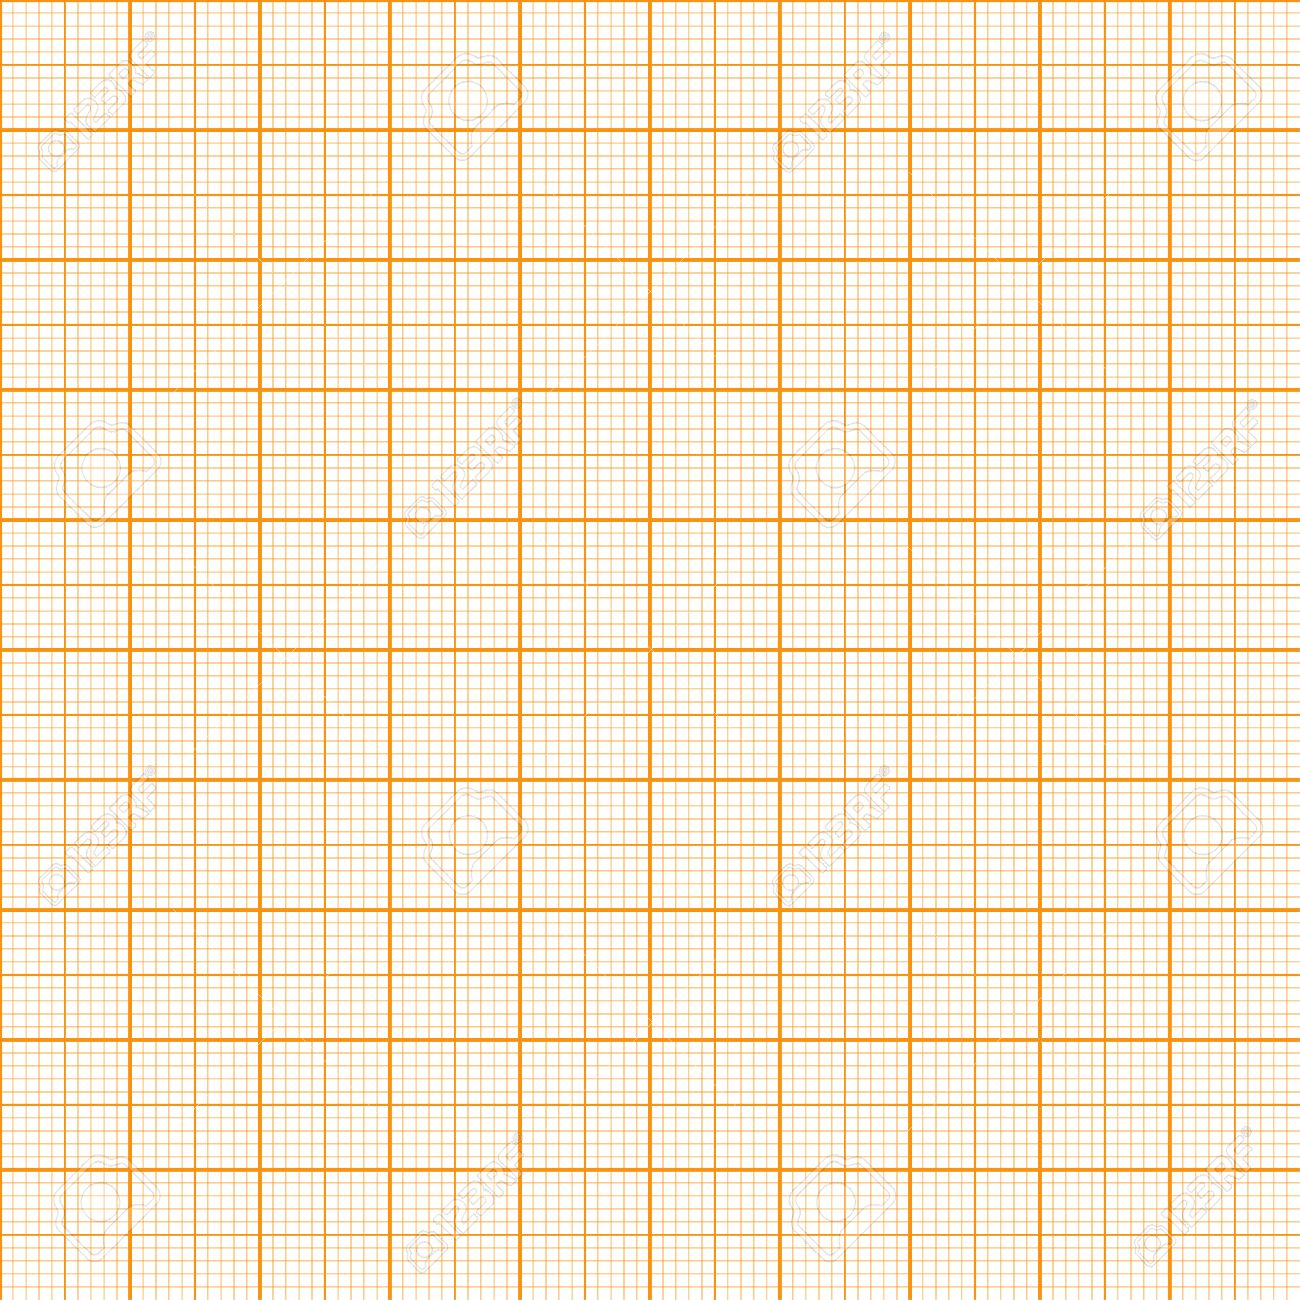 vector graph millimeter paper seamless pattern royalty free cliparts